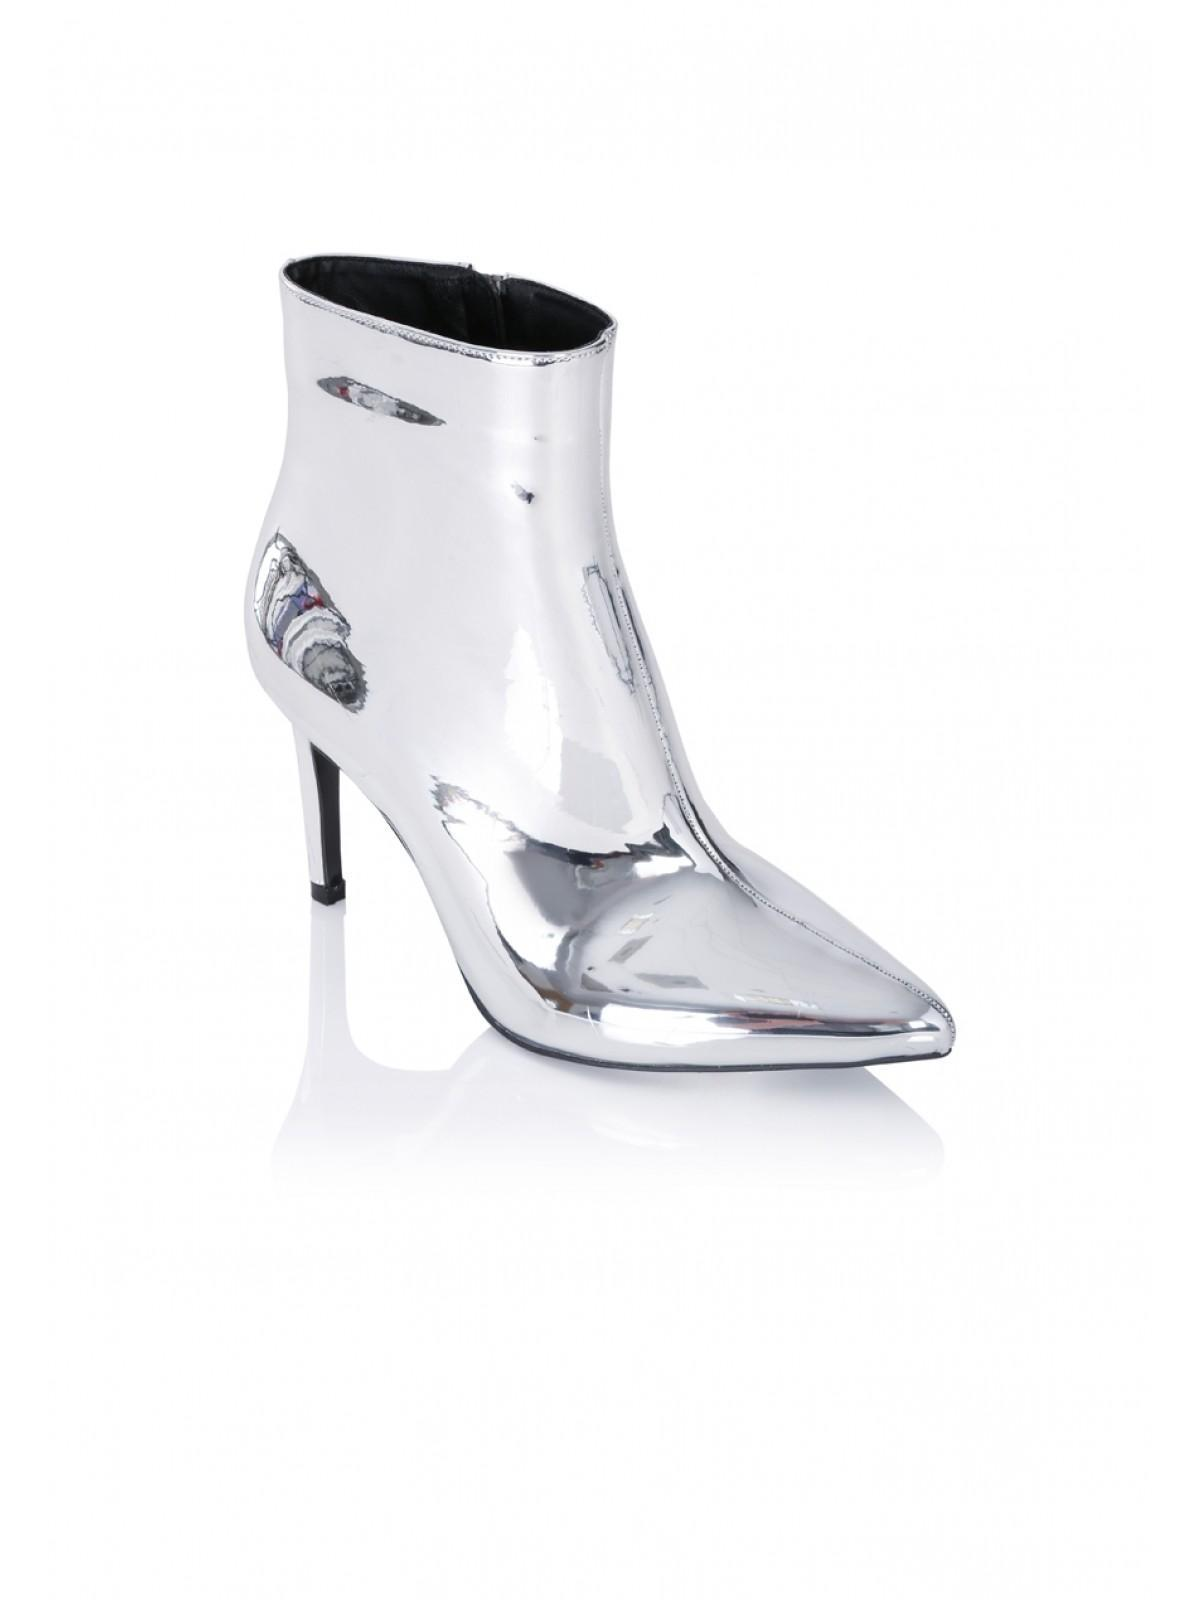 5b4d205ea47 Home; Womens Silver Mirrored Stiletto Ankle Boots. Back. PreviousNext